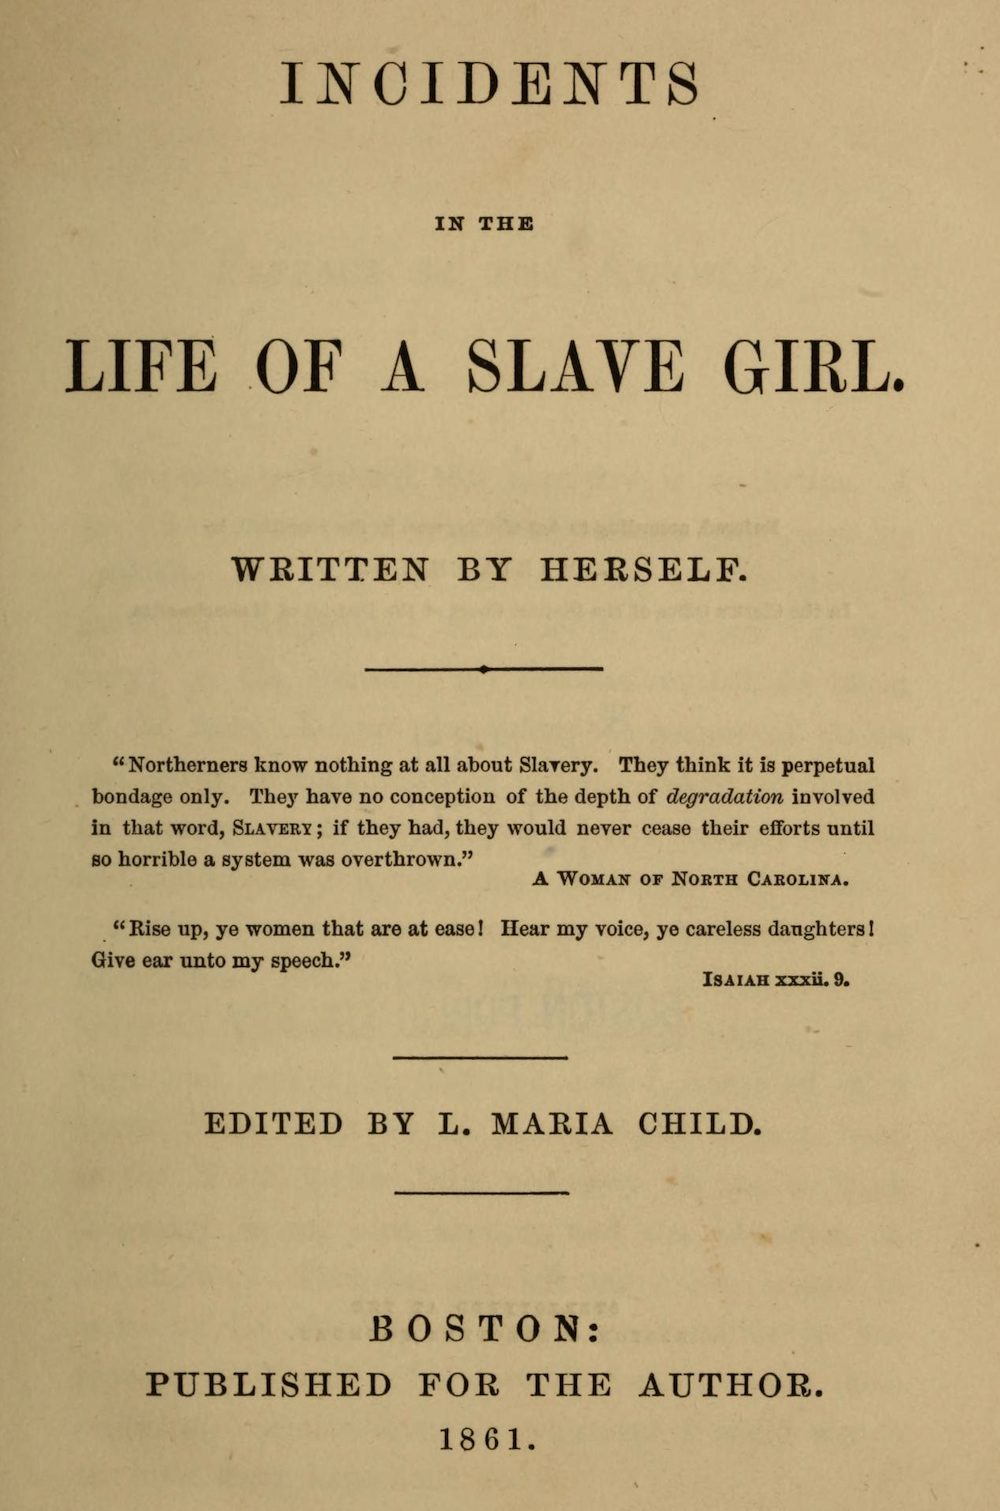 life of a slave girl harriet jacobs essay Free essay on incidents in the life of a slave girl essay the slave narrative of frederick douglas and harriet jacobs: incidents in the life of a slave girl.